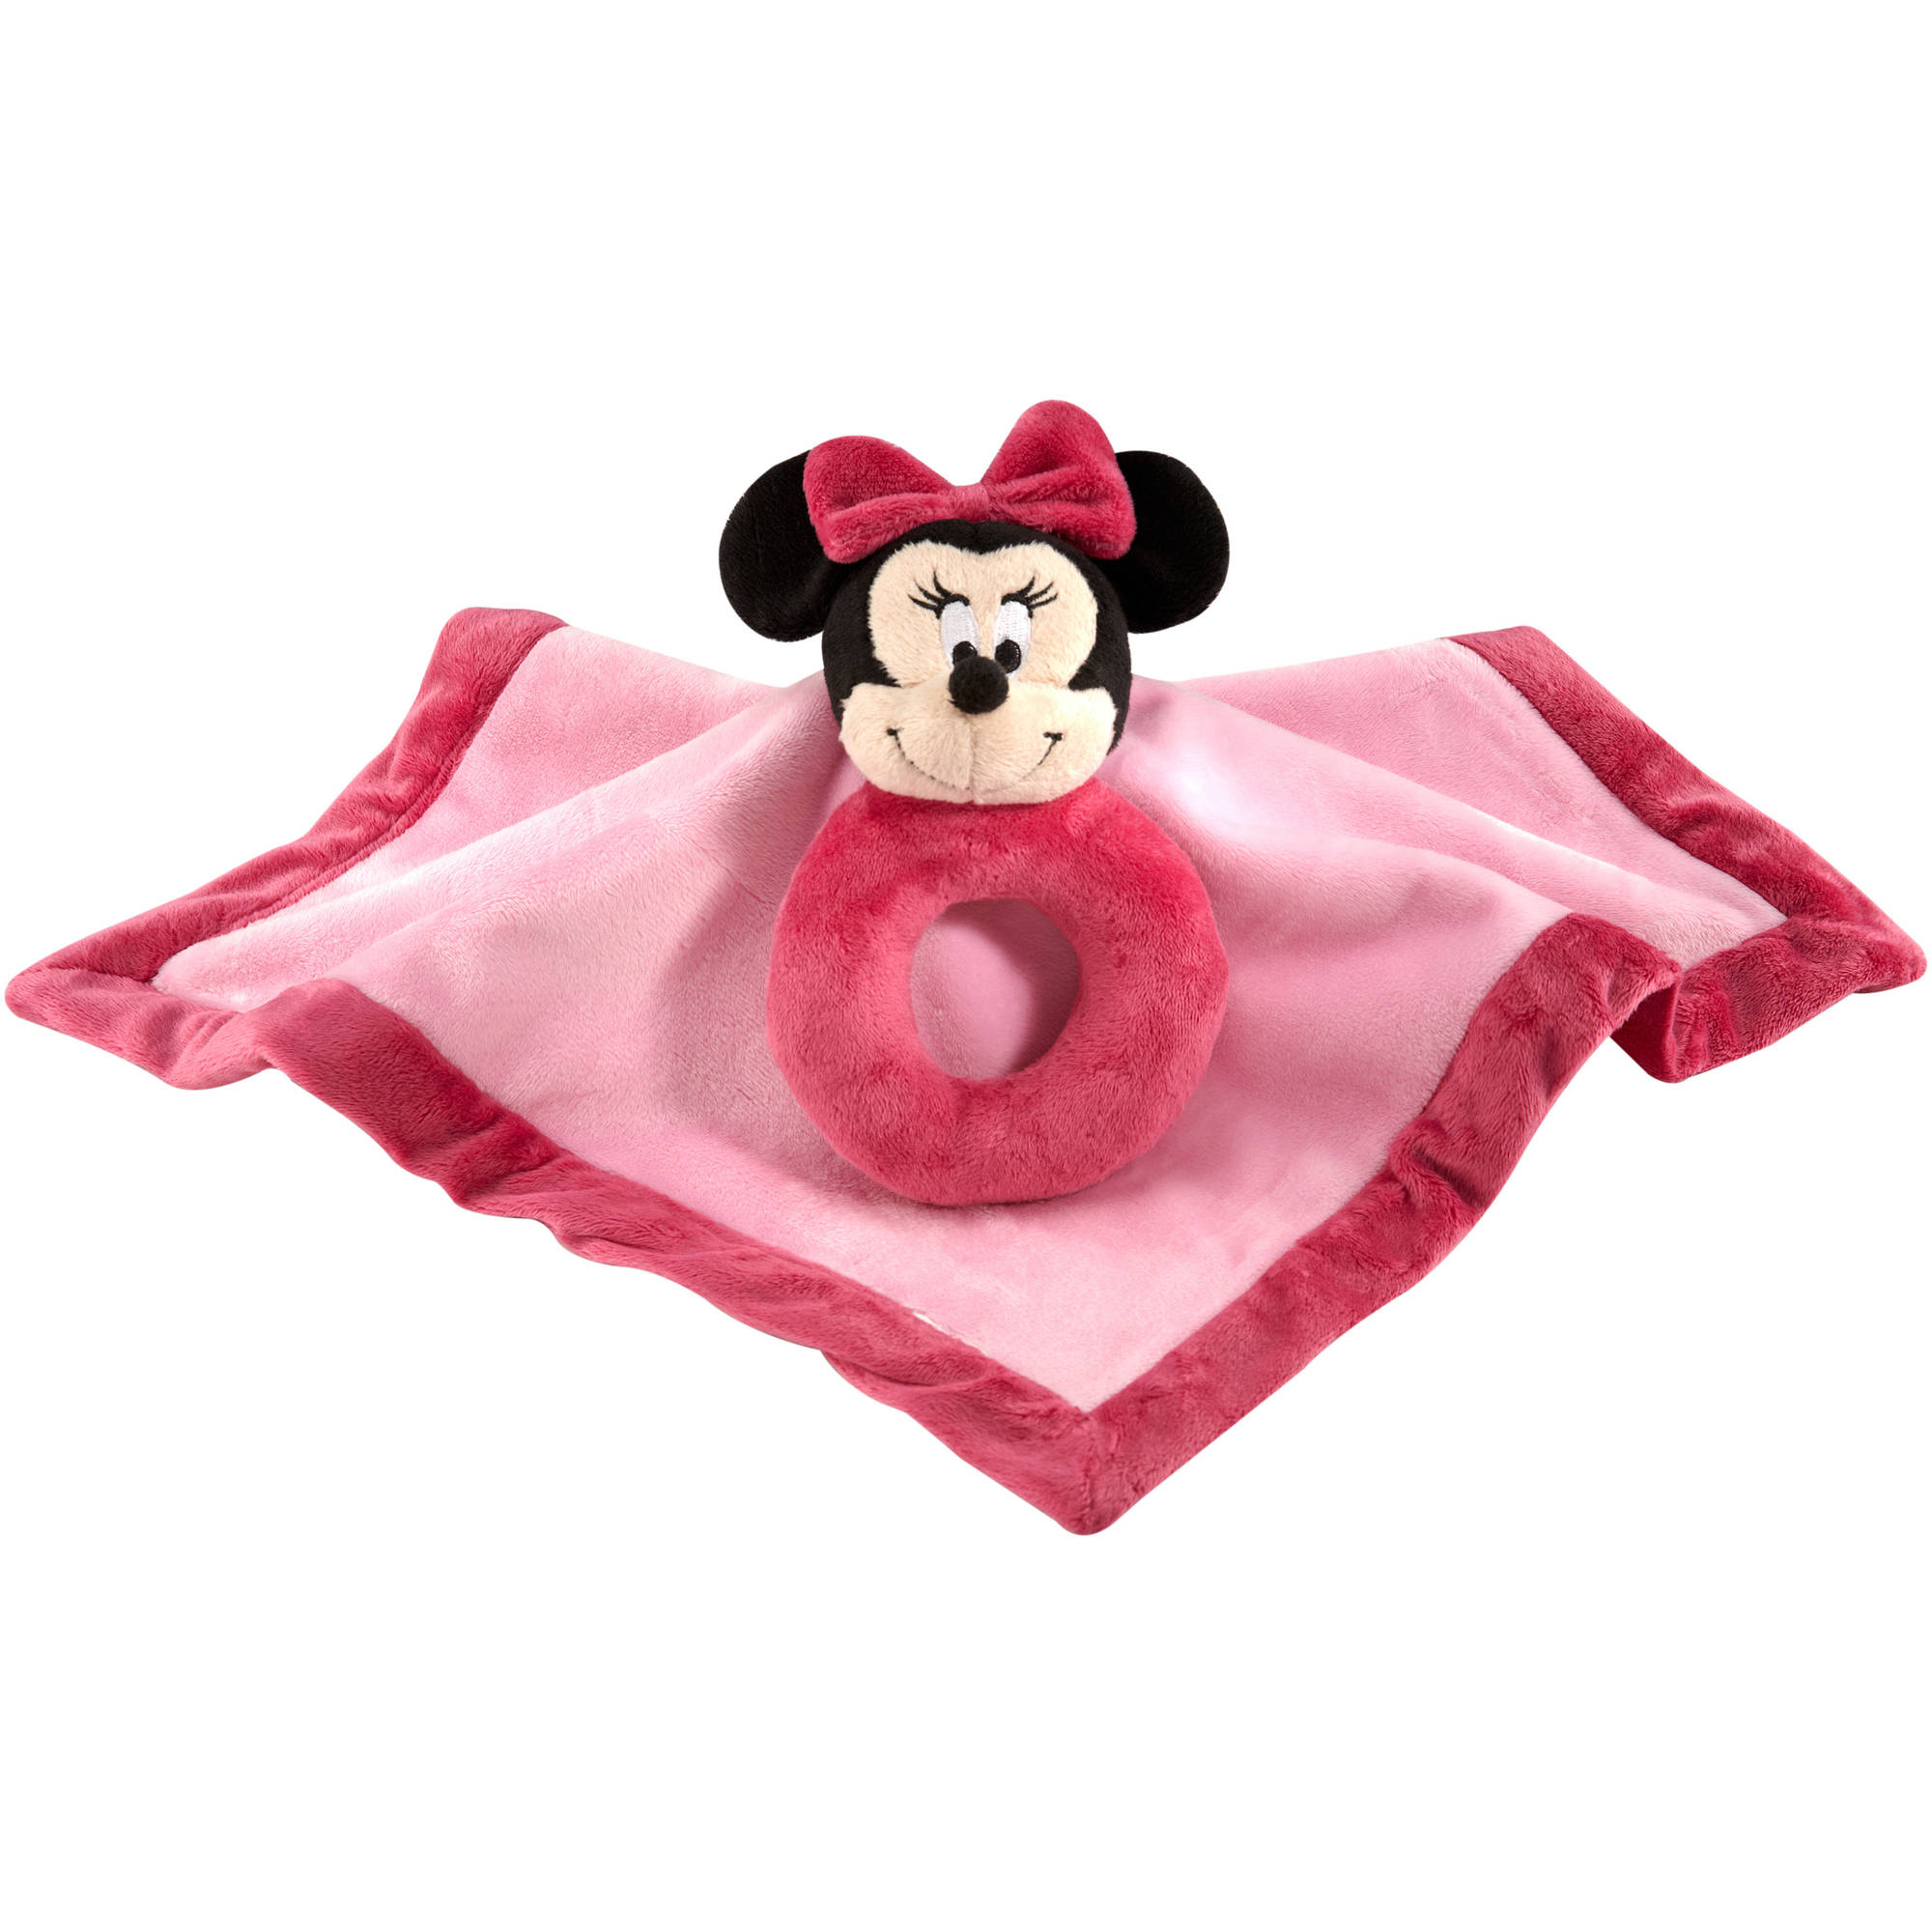 Disney Minnie Mouse Security Blanket with Ring Rattle